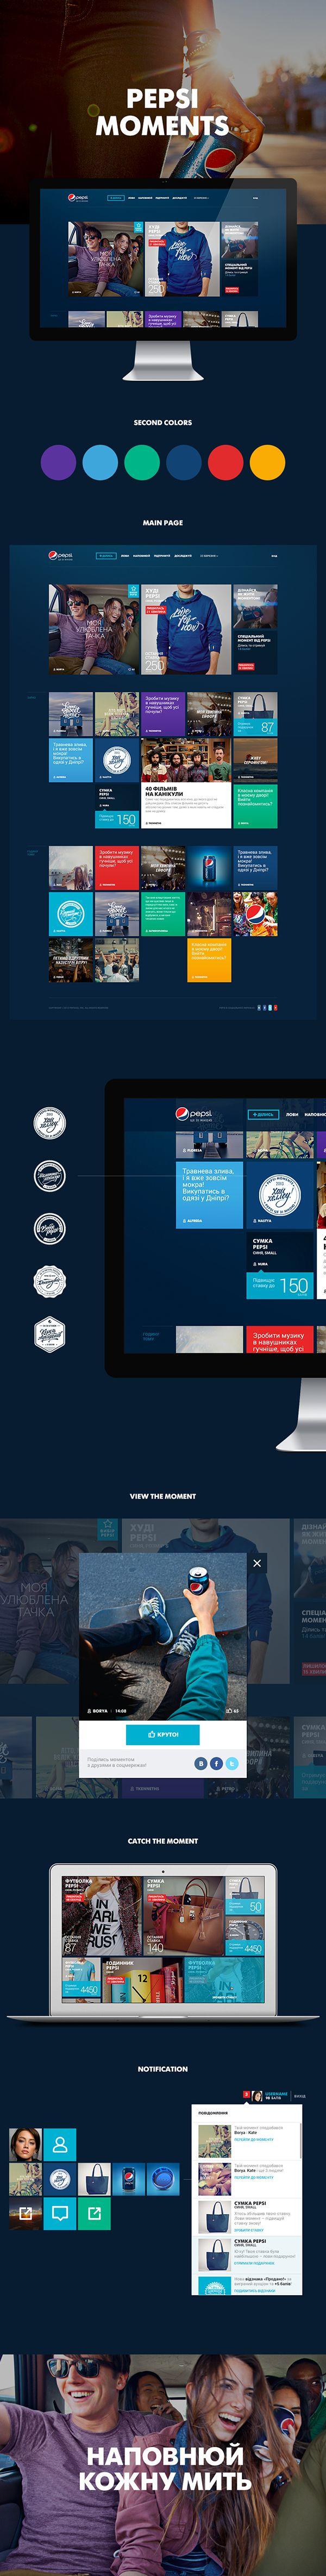 Pepsi Moments by Dmitry Silantiev, via Behance